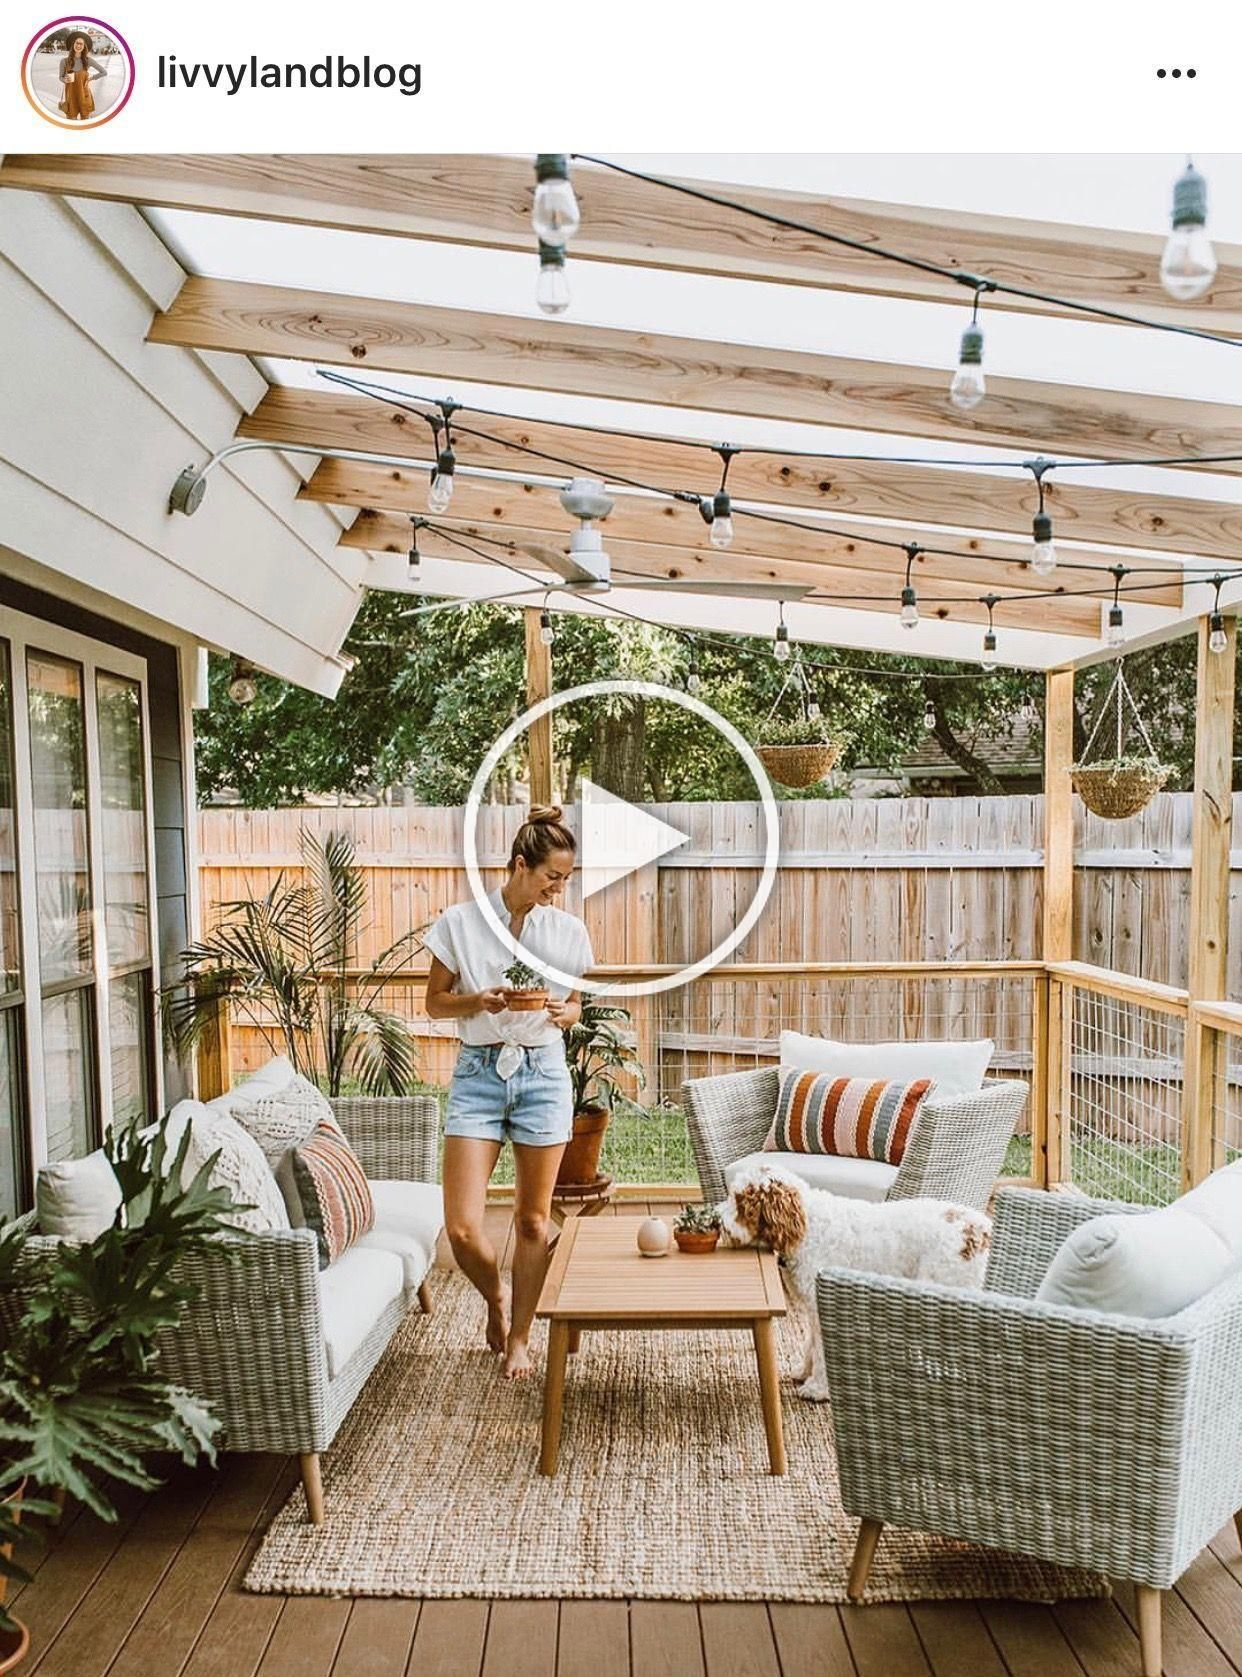 Its Times To Replace That Scrappy Antiquated Roof Are You Wondering How Much It Will Cost To Install A E In 2020 Patio Deck Designs Patio Design Outdoor Covered Patio